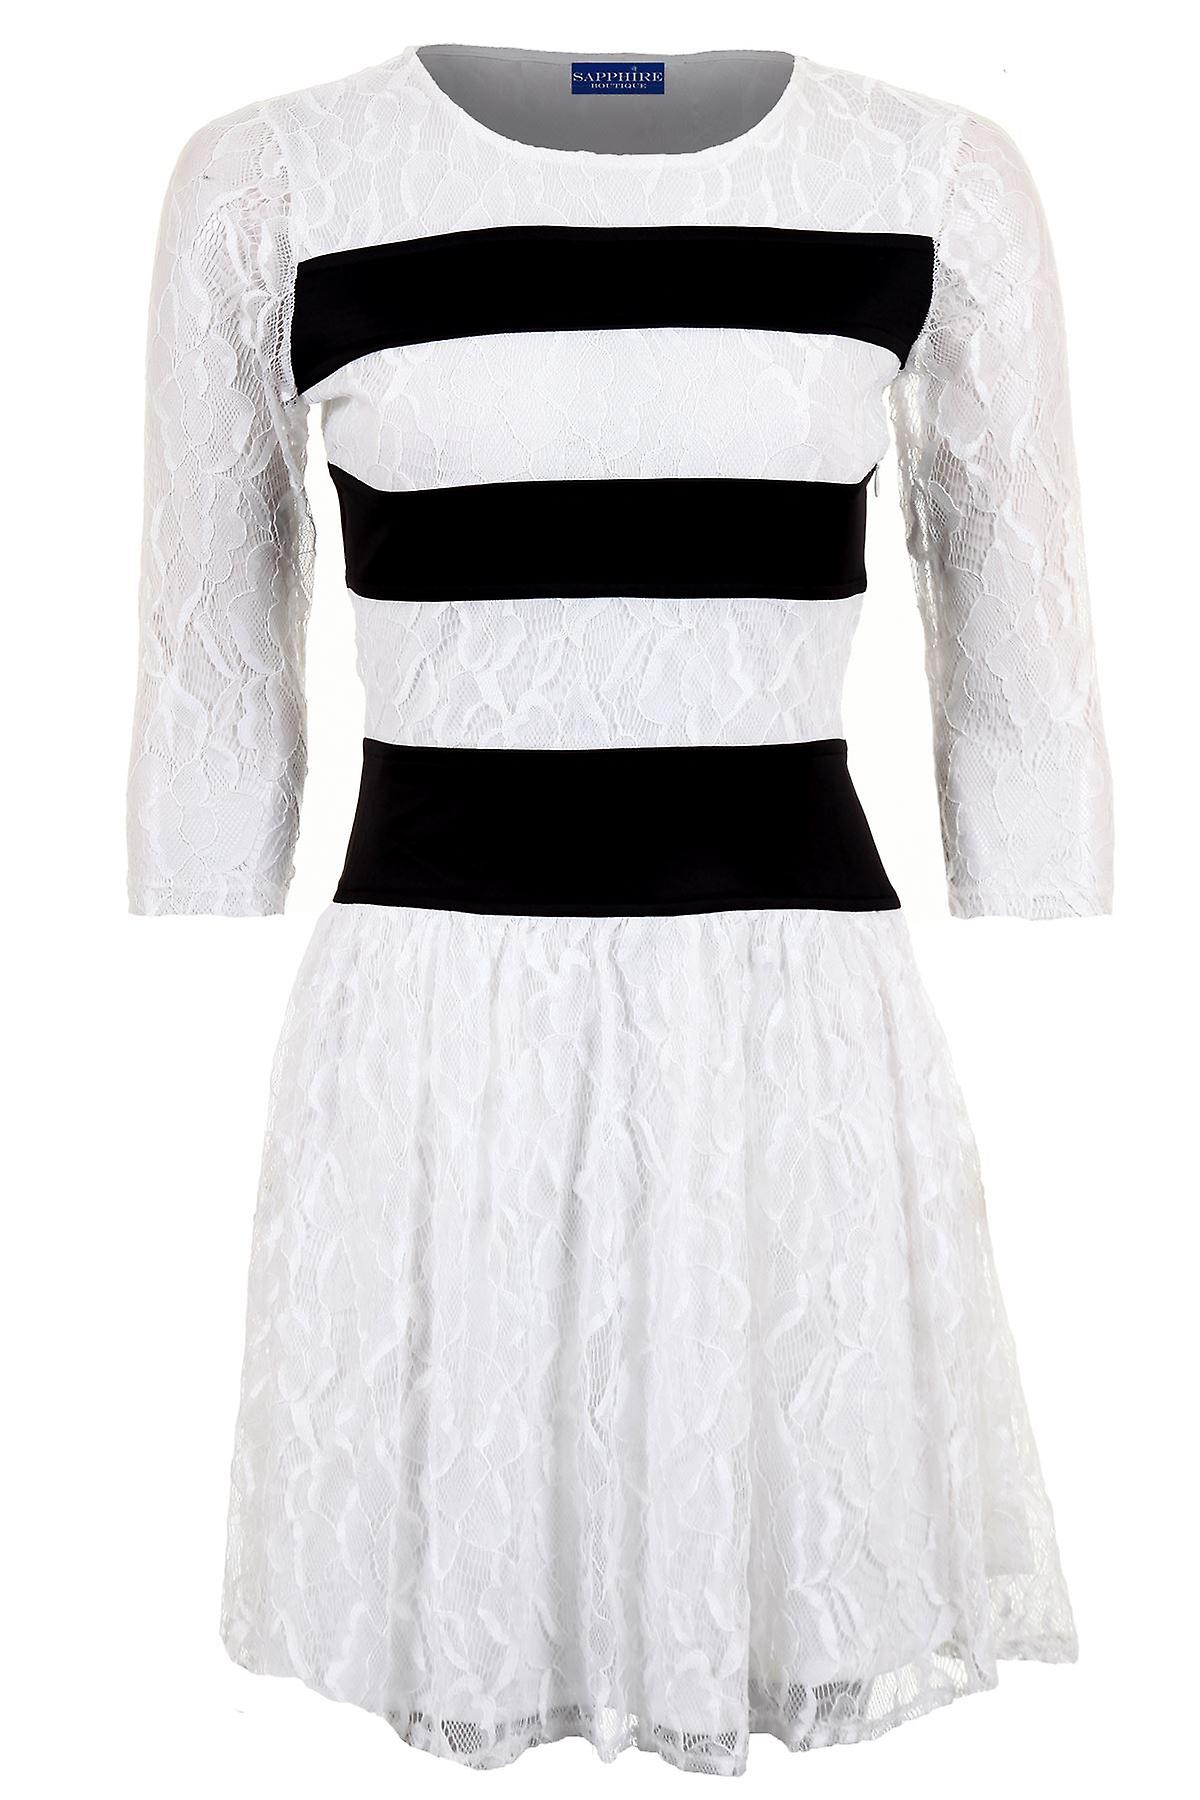 Ladies 3/4 Sleeve Lace Lined Stripe Contrast Flare Skater Women's Dress